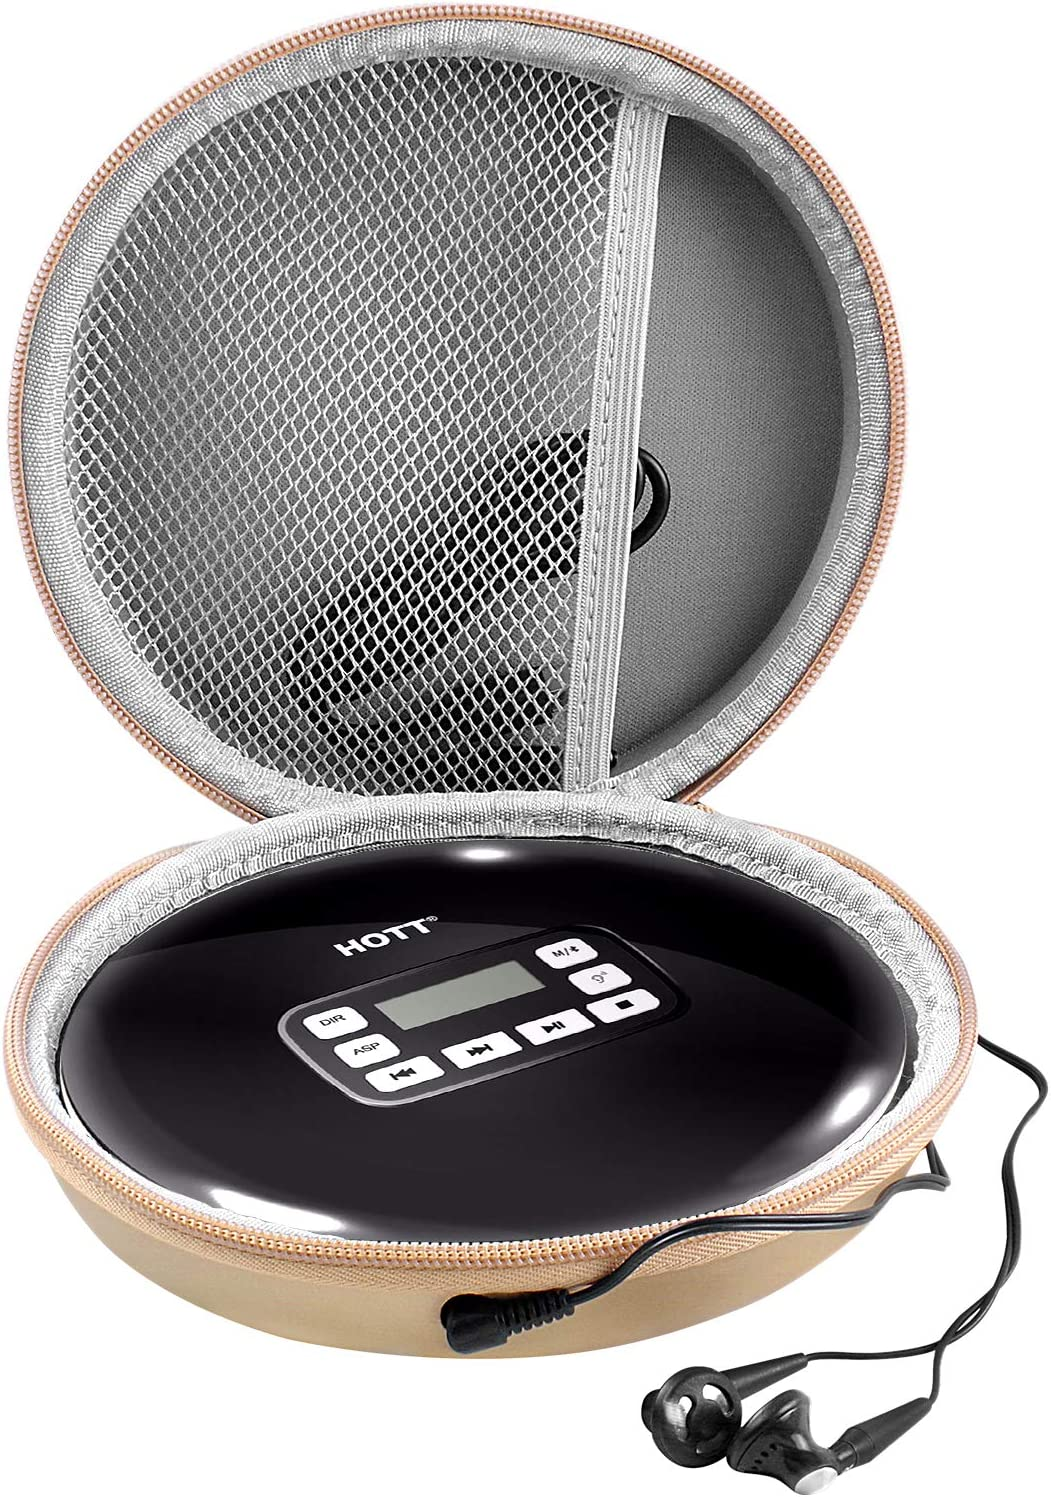 Aproca Hard Carry Travel Case for Coby Portable Compact Anti-Skip CD Player